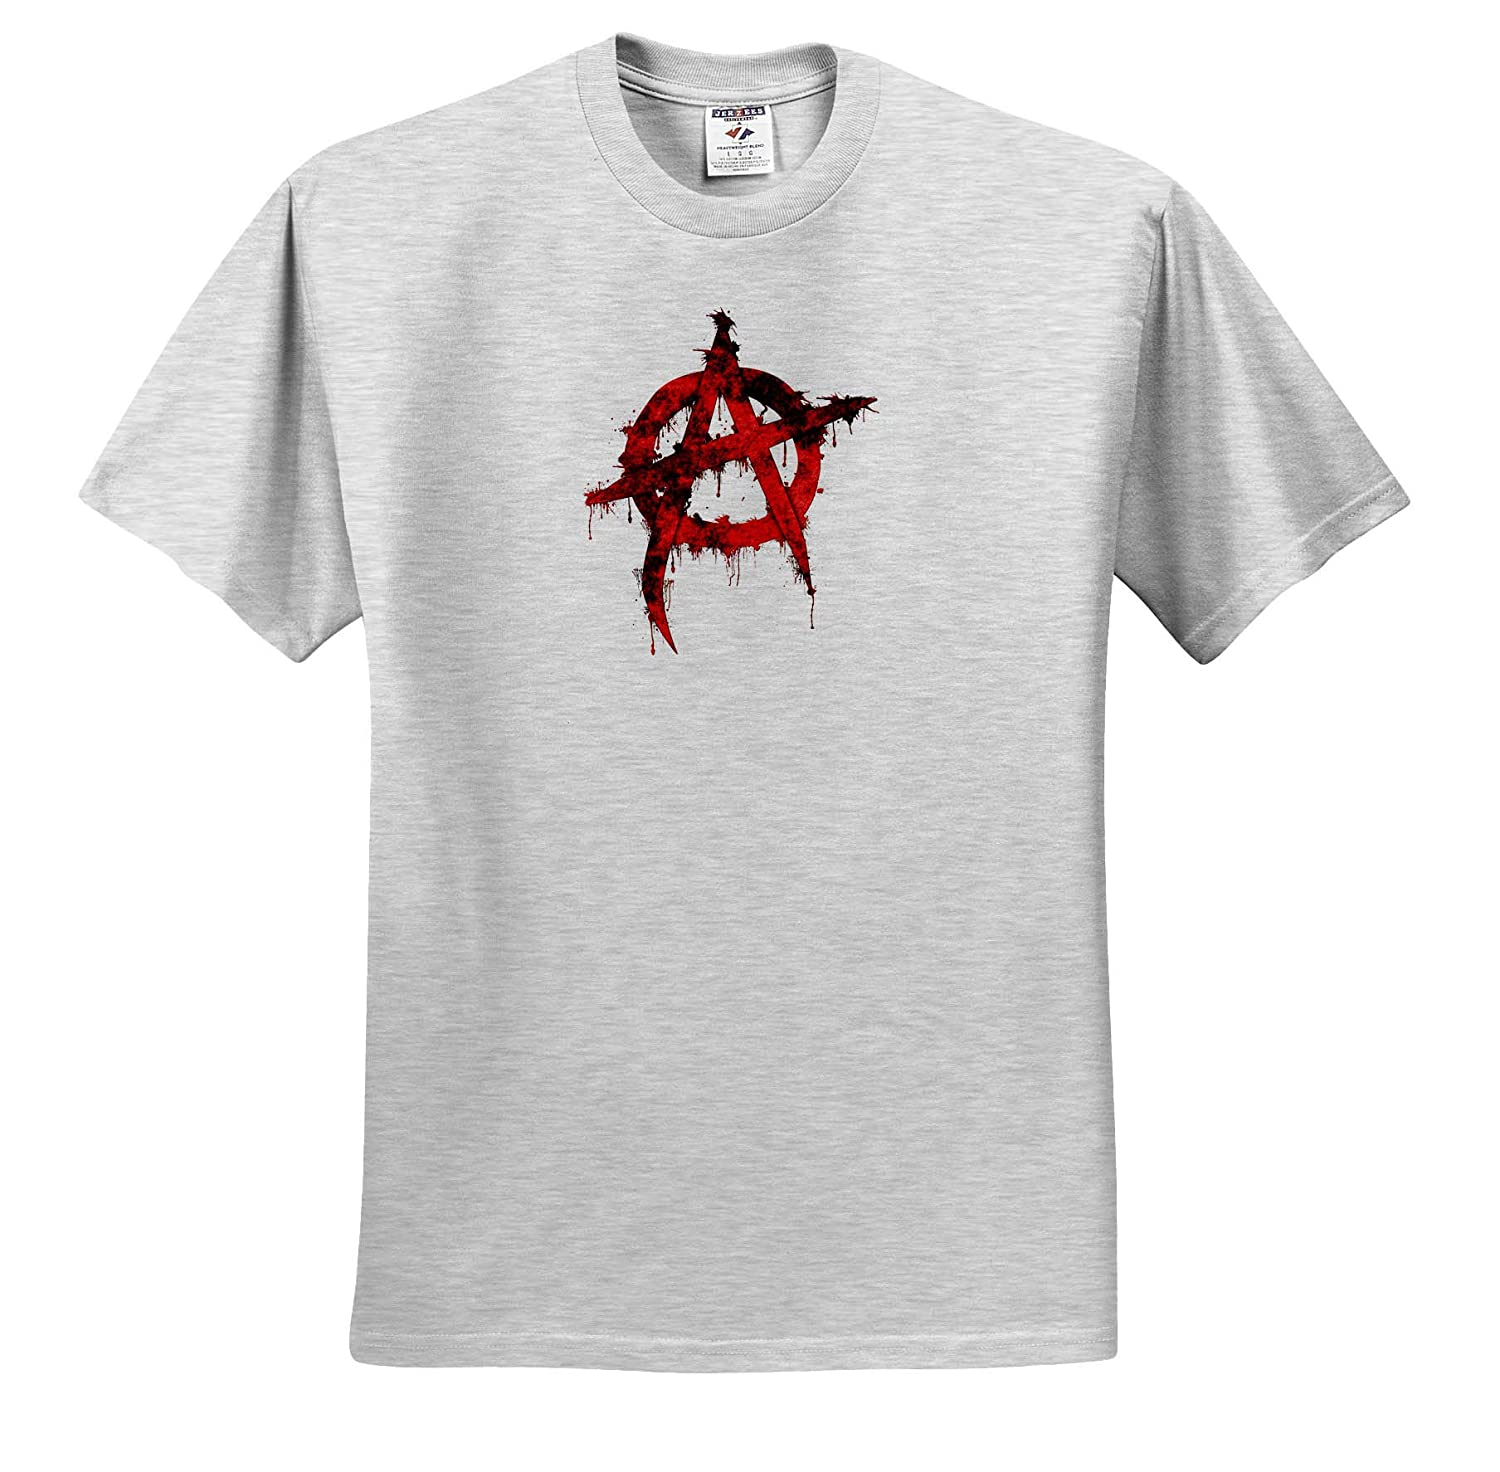 Political Anarchy Symbol in Dripping Spraypaint - T-Shirts 3dRose Macdonald Creative Studios Political